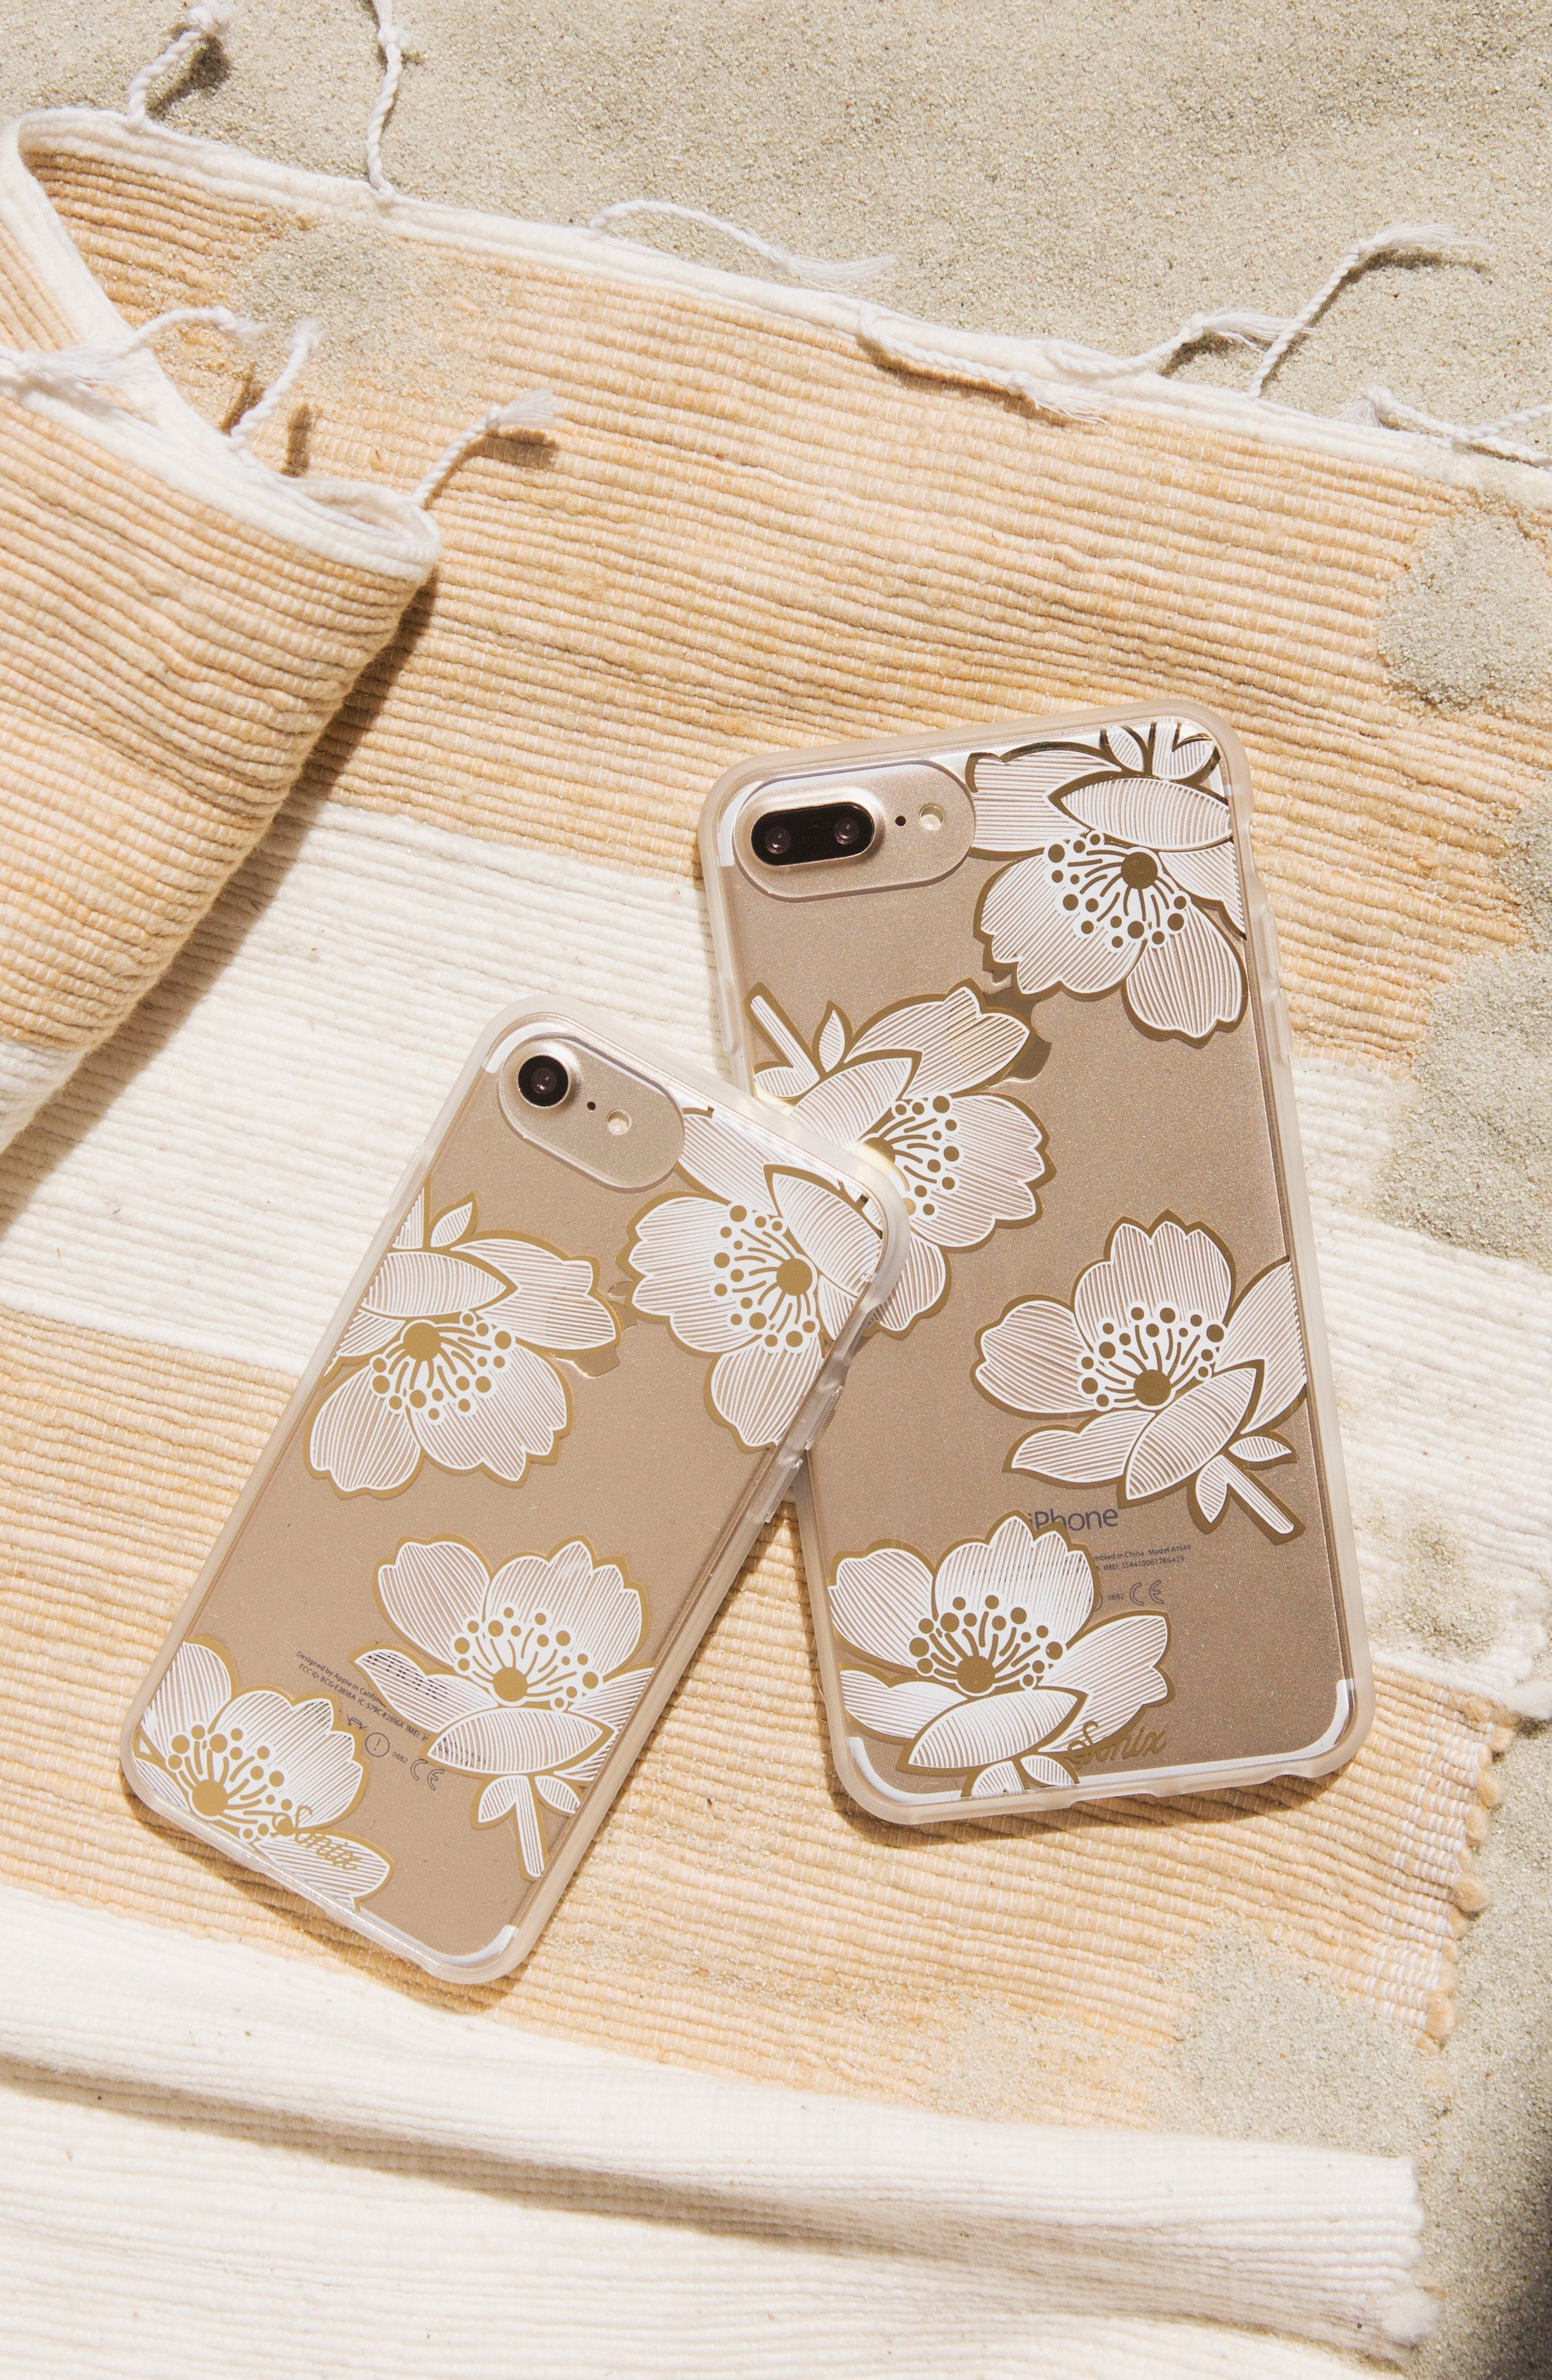 ☆Sonix Bellflower iPhone 6/6s/7/8 & 6/6s/7/8 Plus Case☆